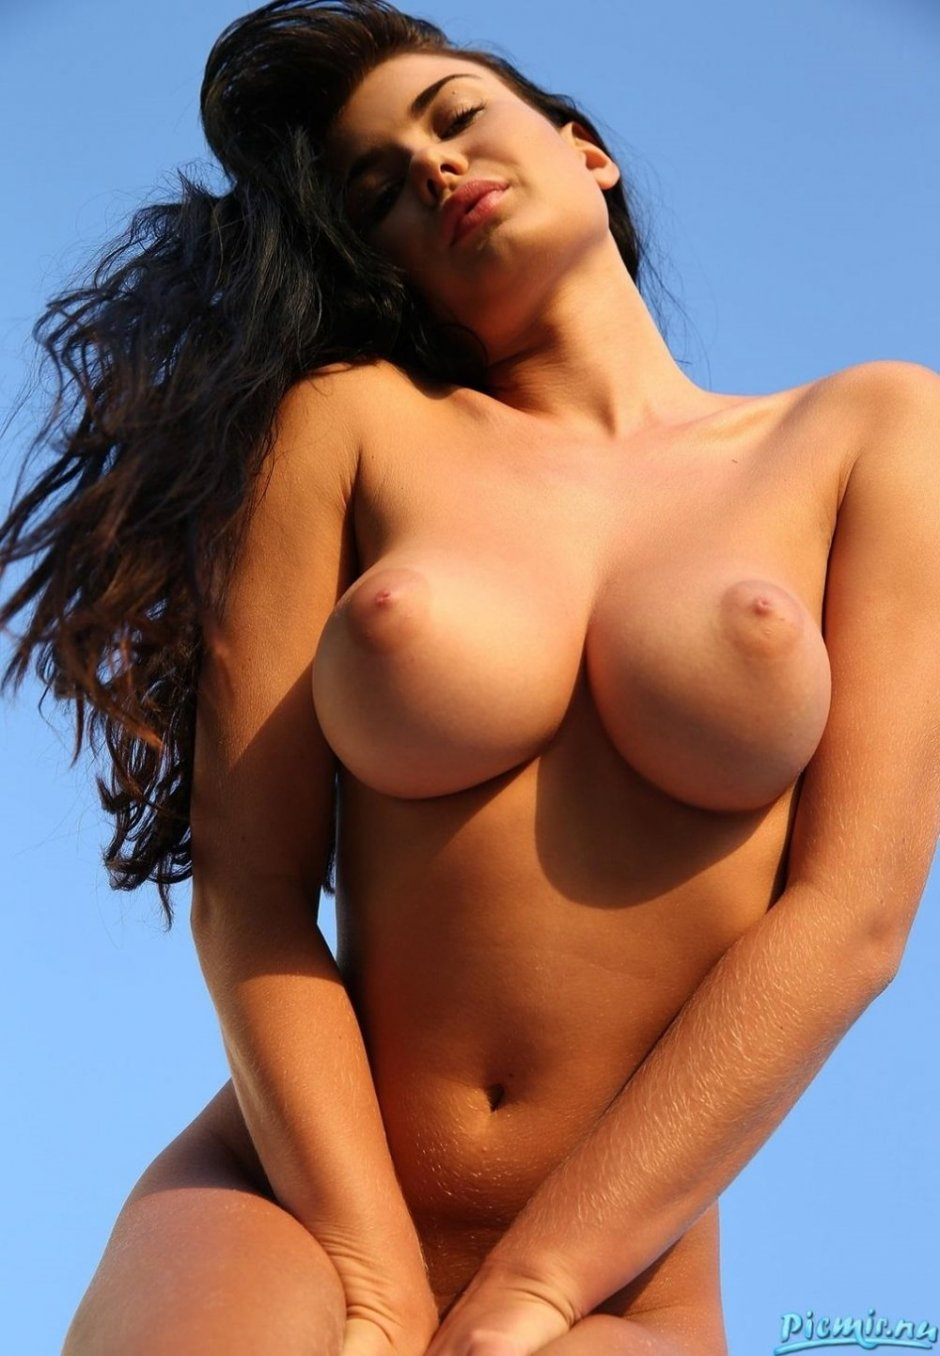 Tits sexy nude